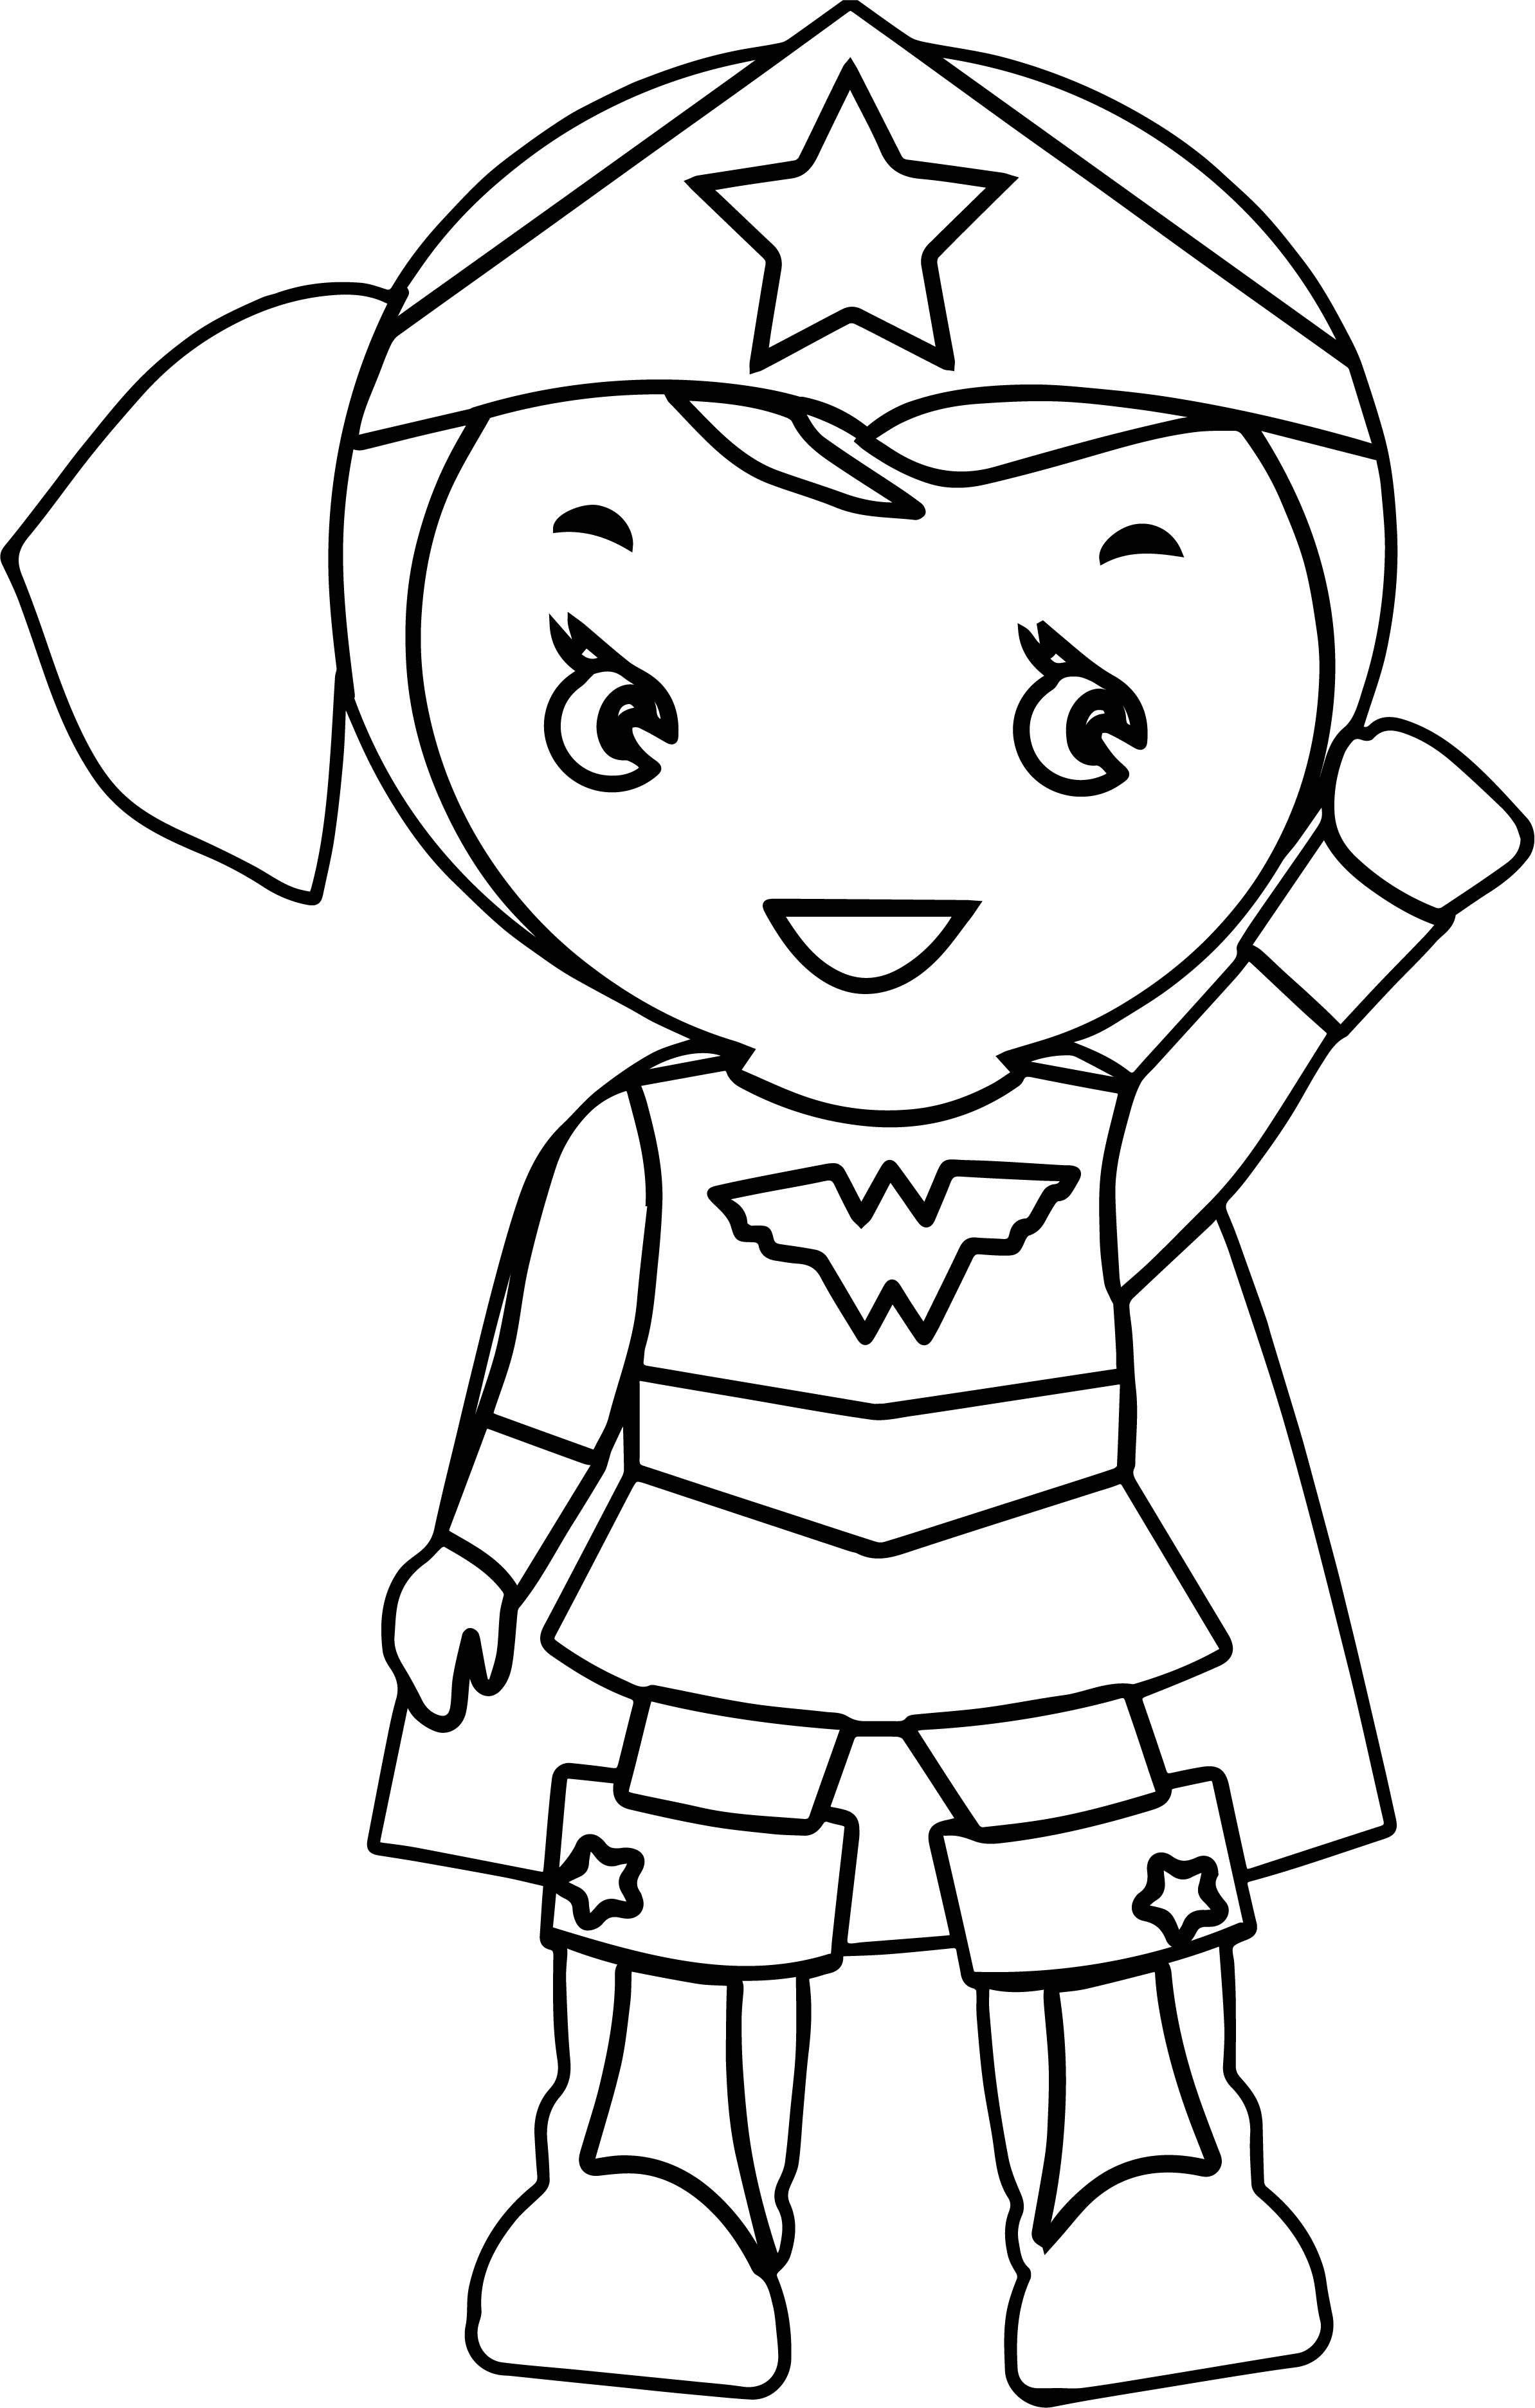 2387x3745 Cool Free Cartoon Wonder Woman Coloring Pages For Kids Printable